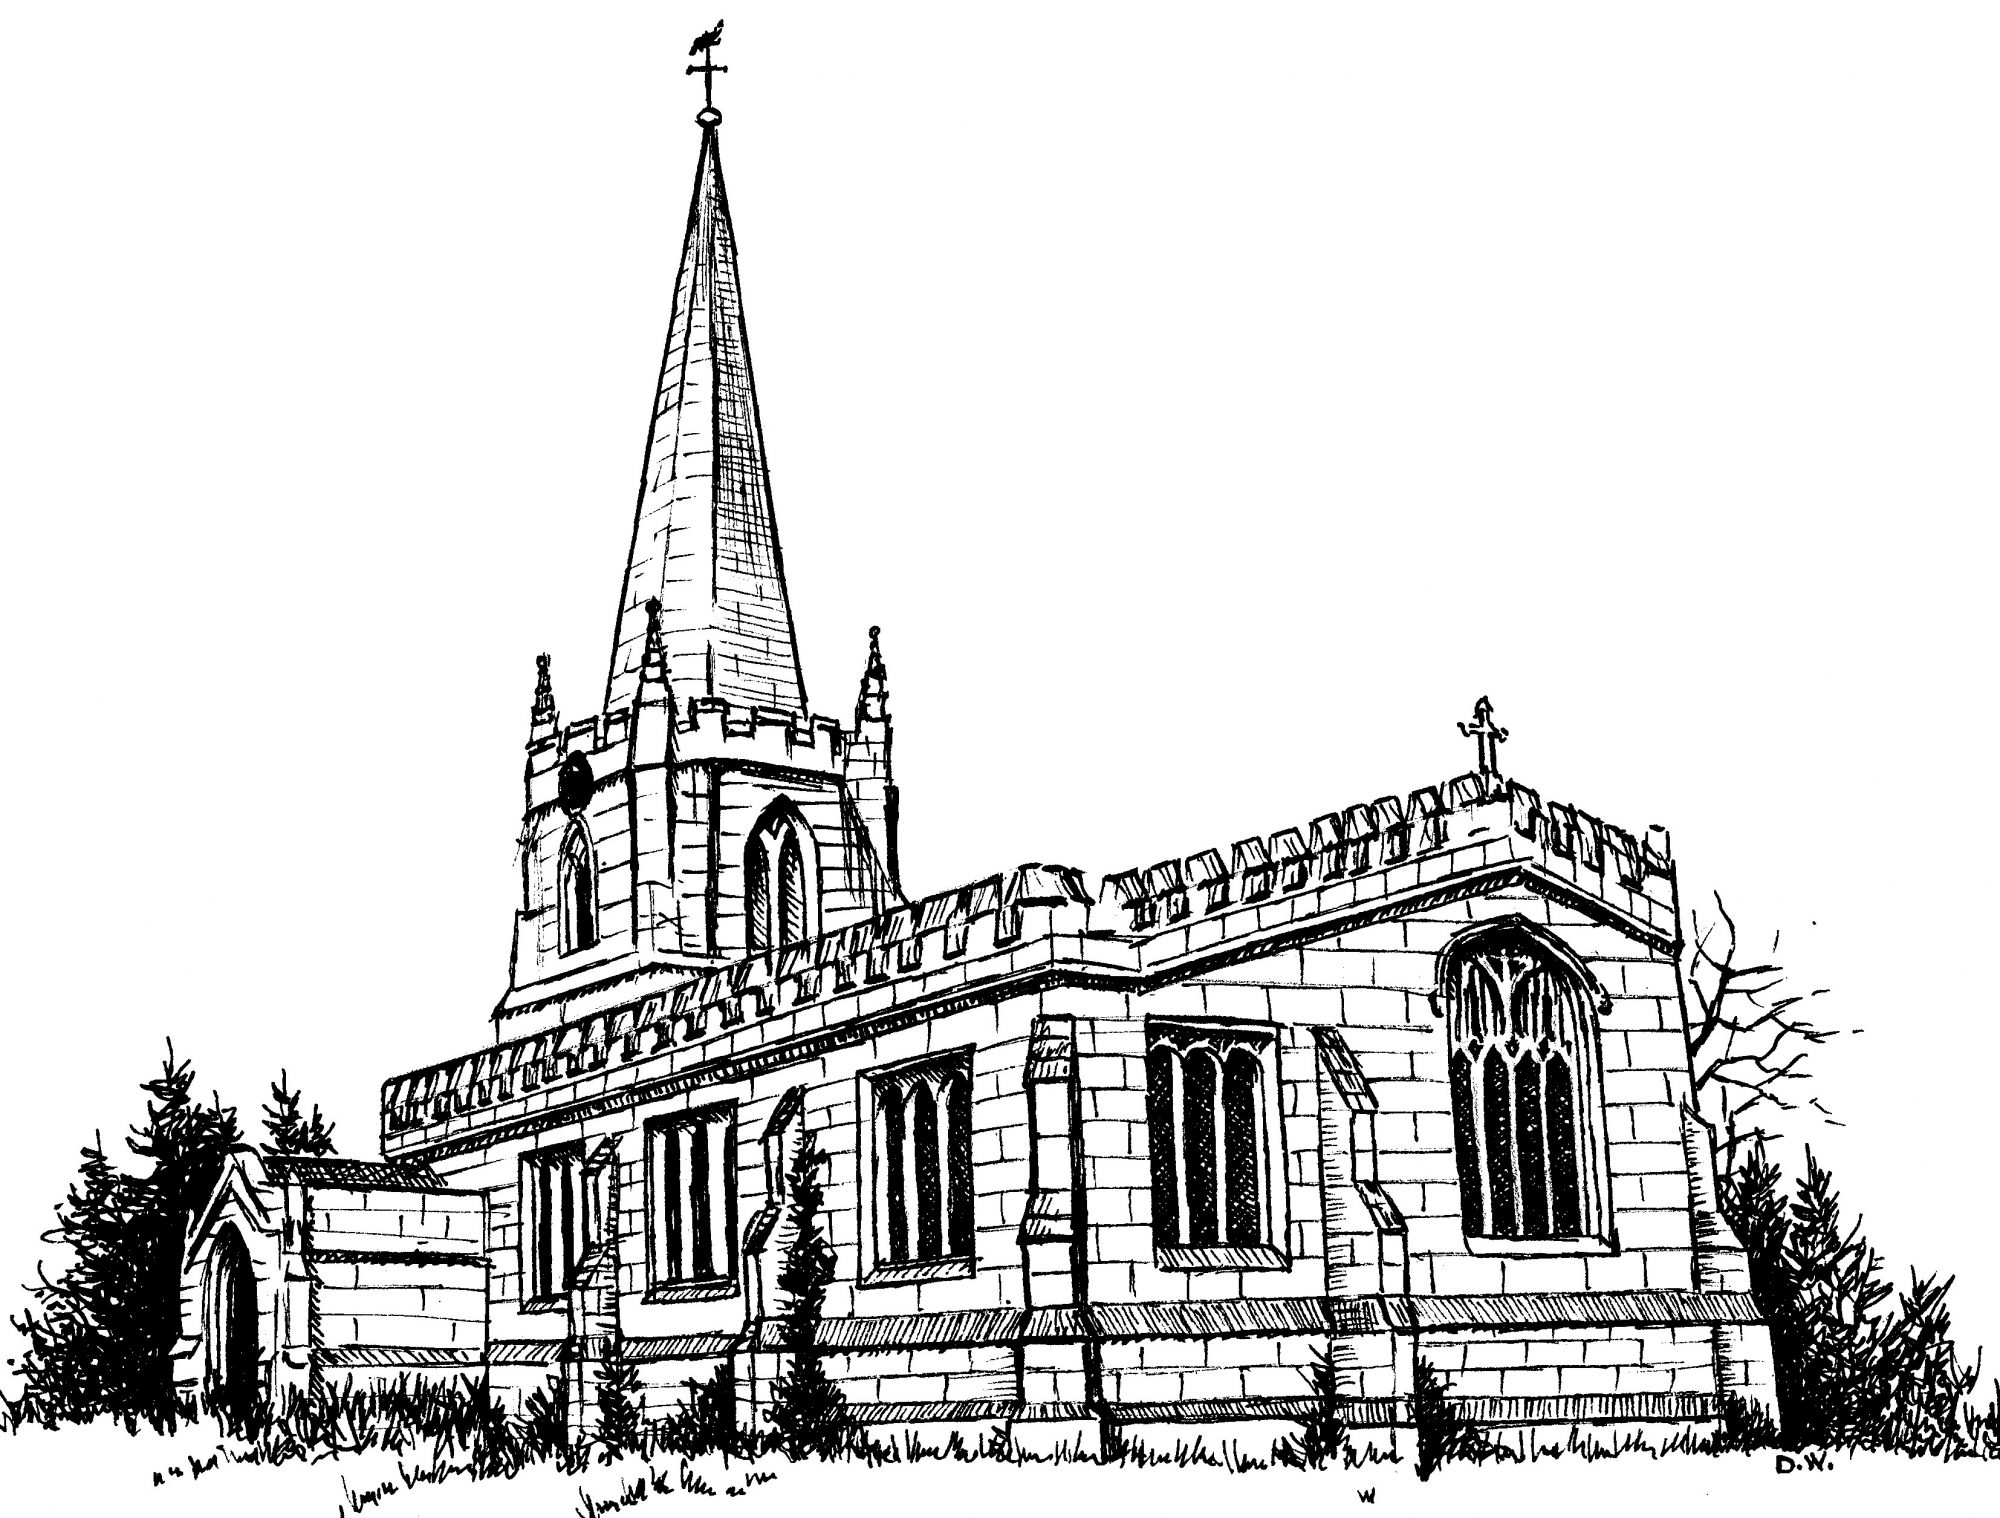 In drawing of Saint Wilfrid church in Nottinghamshire, where William Brewster (Pilgrim leader) once worshiped.